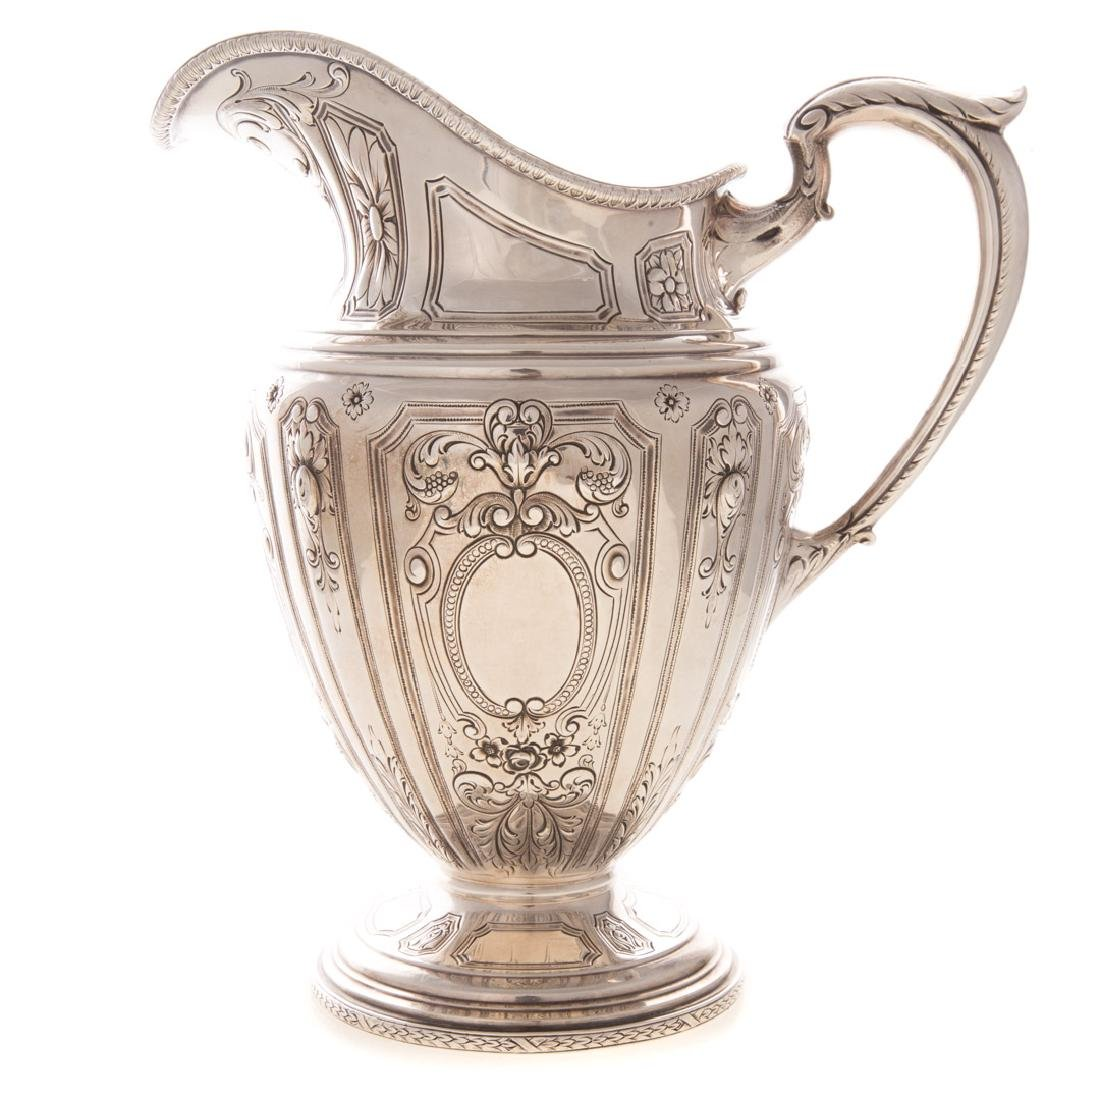 Baltimore sterling silver pitcher by Schofield